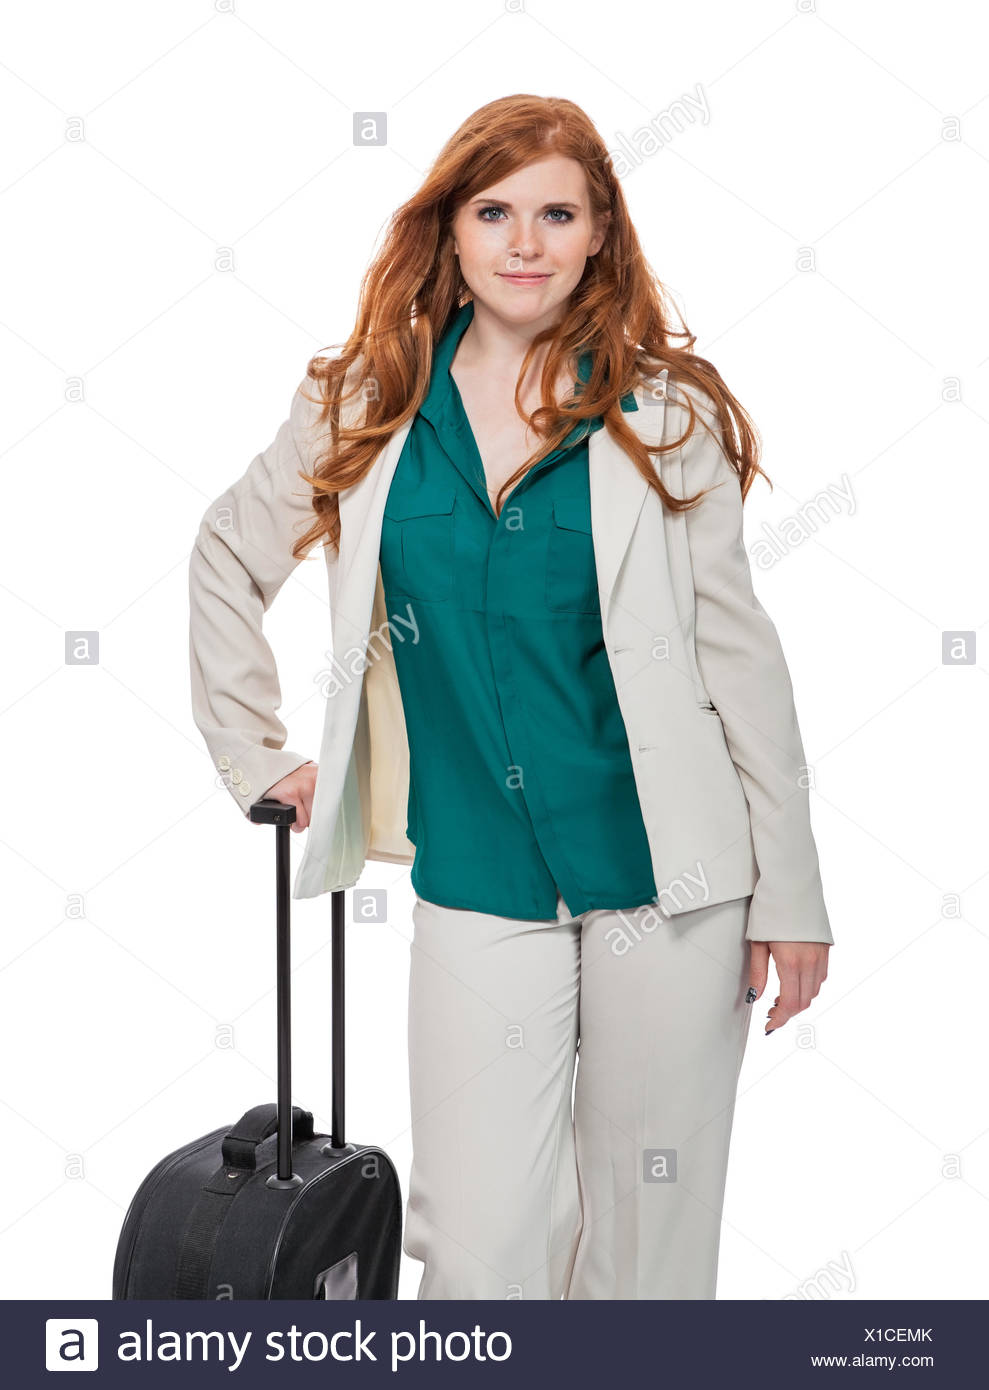 Roten Stock Photos & Roten Stock Images - Page 5 - Alamy